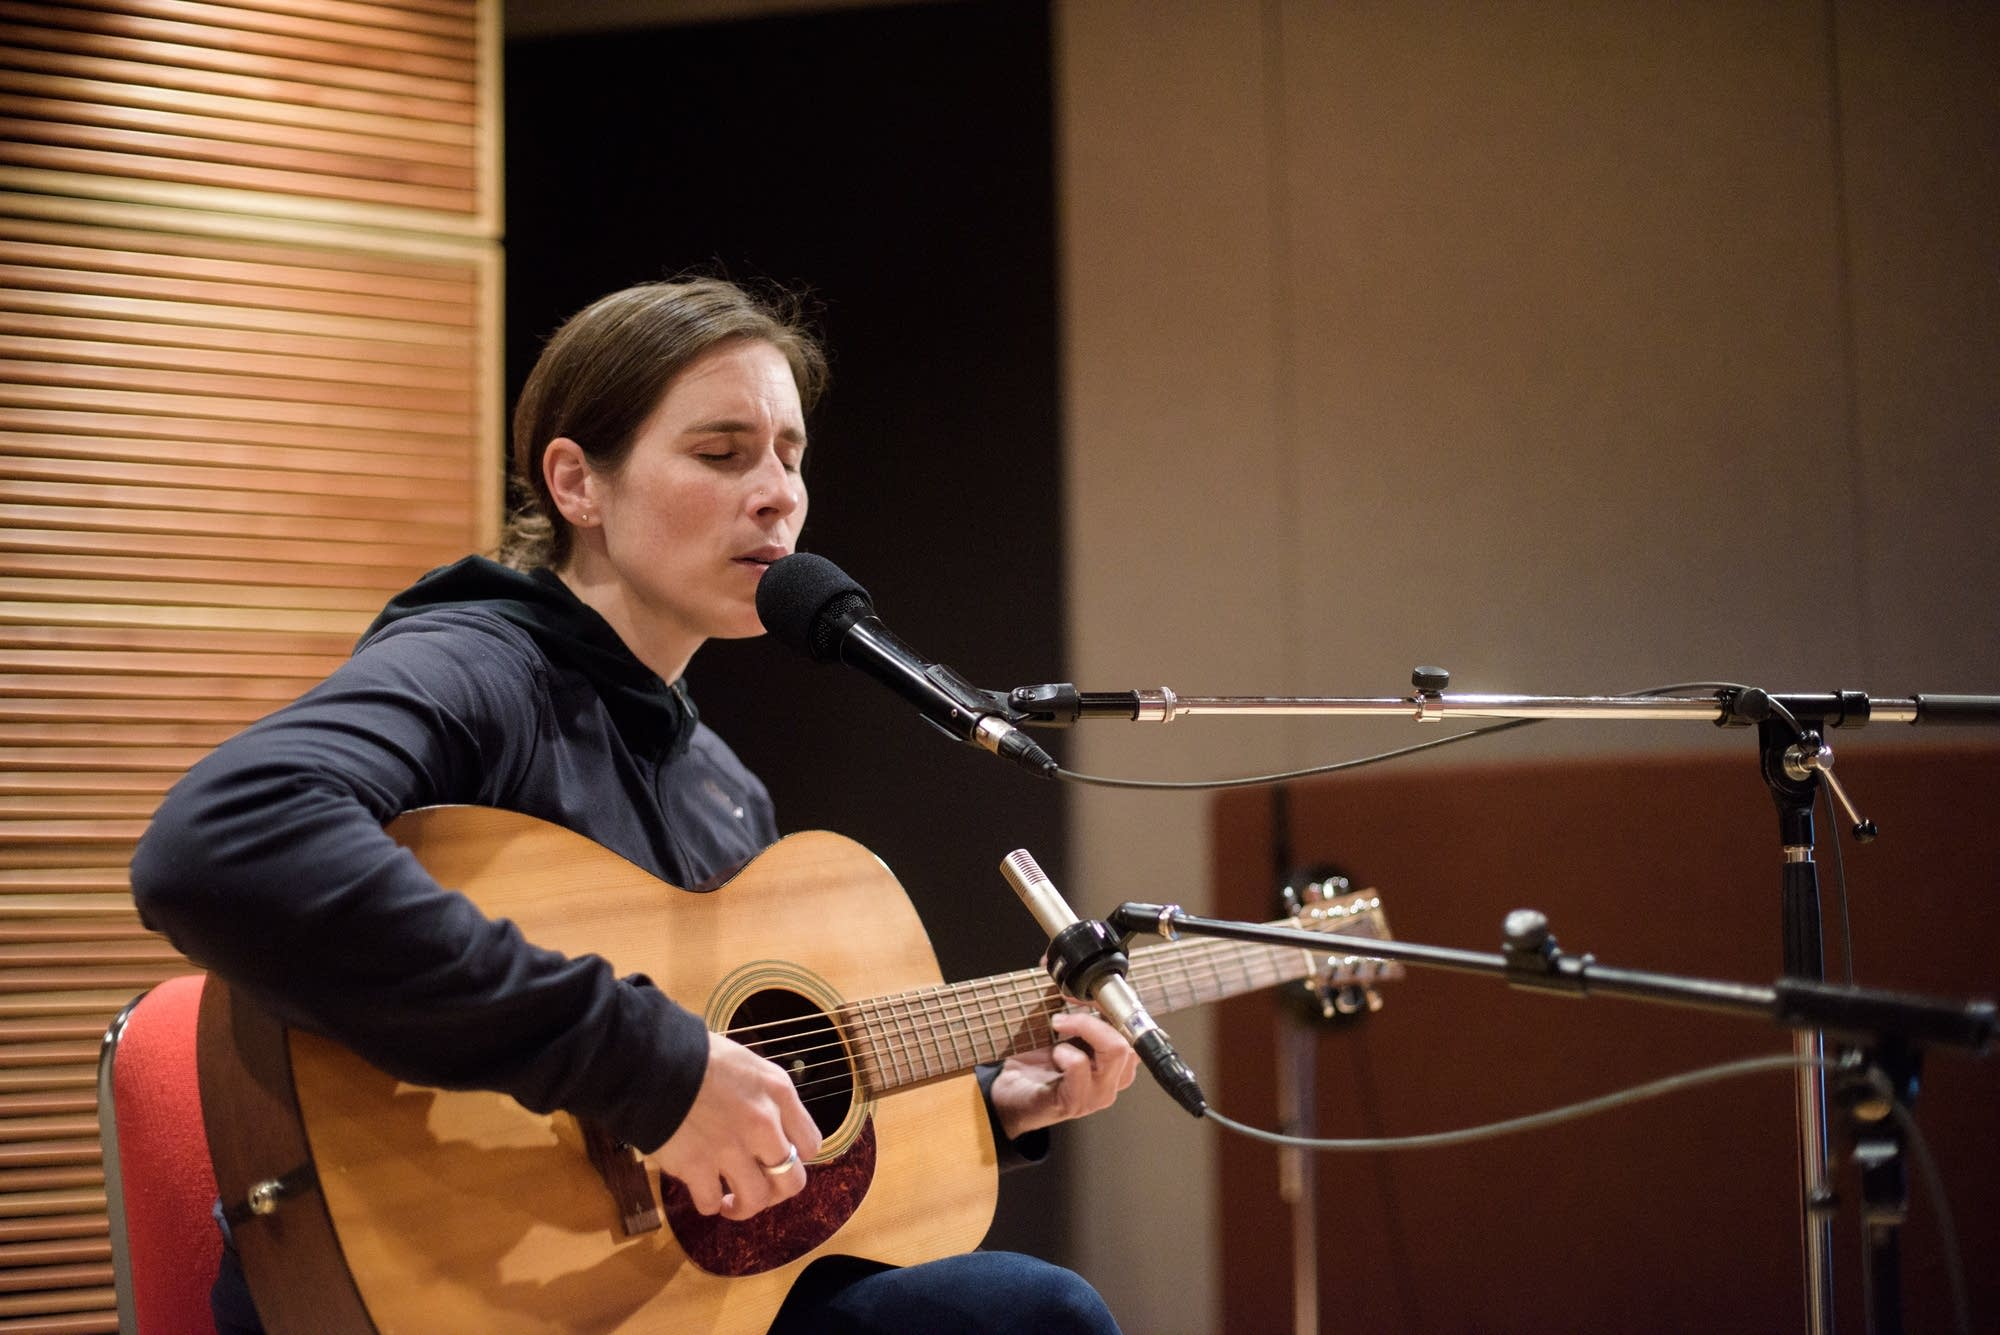 Rose Cousins performs in the Radio Heartland studio | The Current